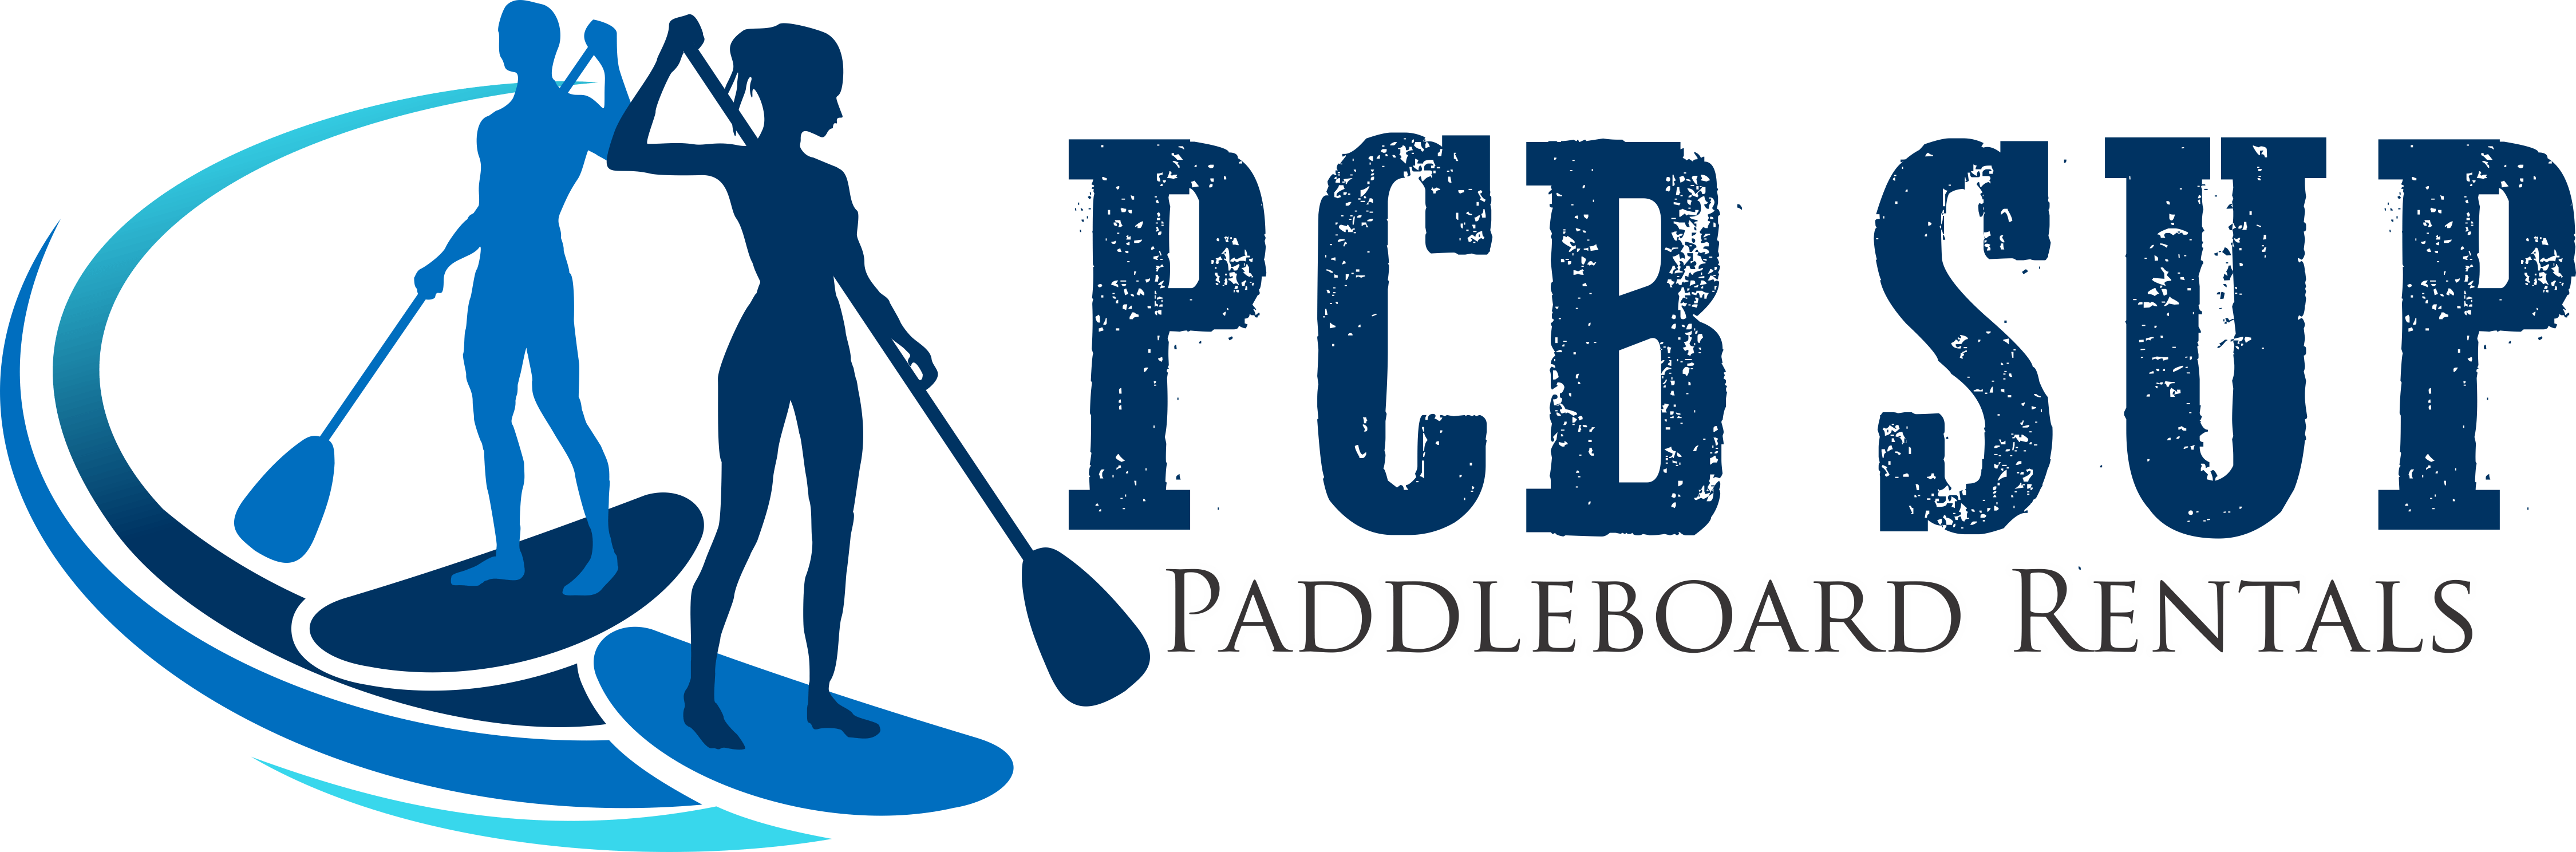 Panama City Beach Paddleboard Rentals, Tours & Fishing Charters